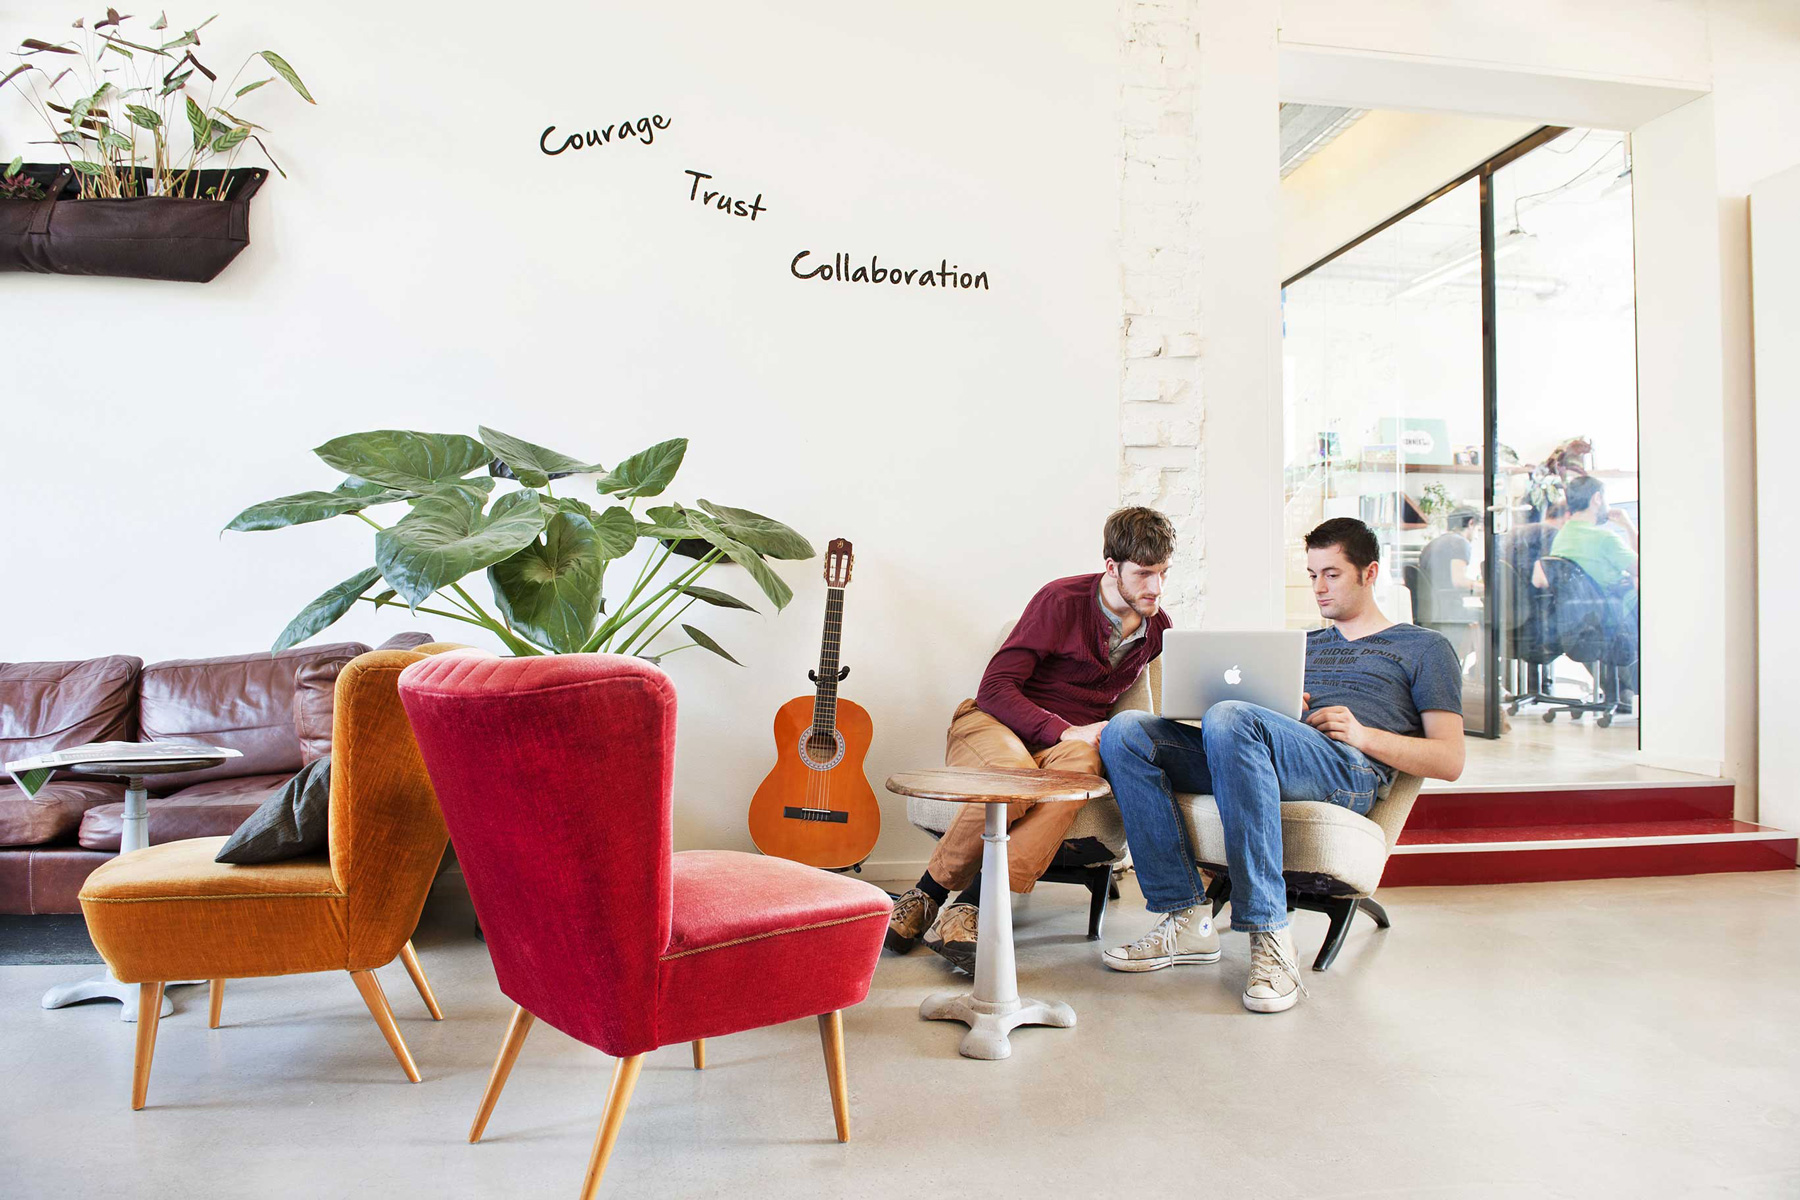 courage trust collaboration business social impact hub workspace amsterdam